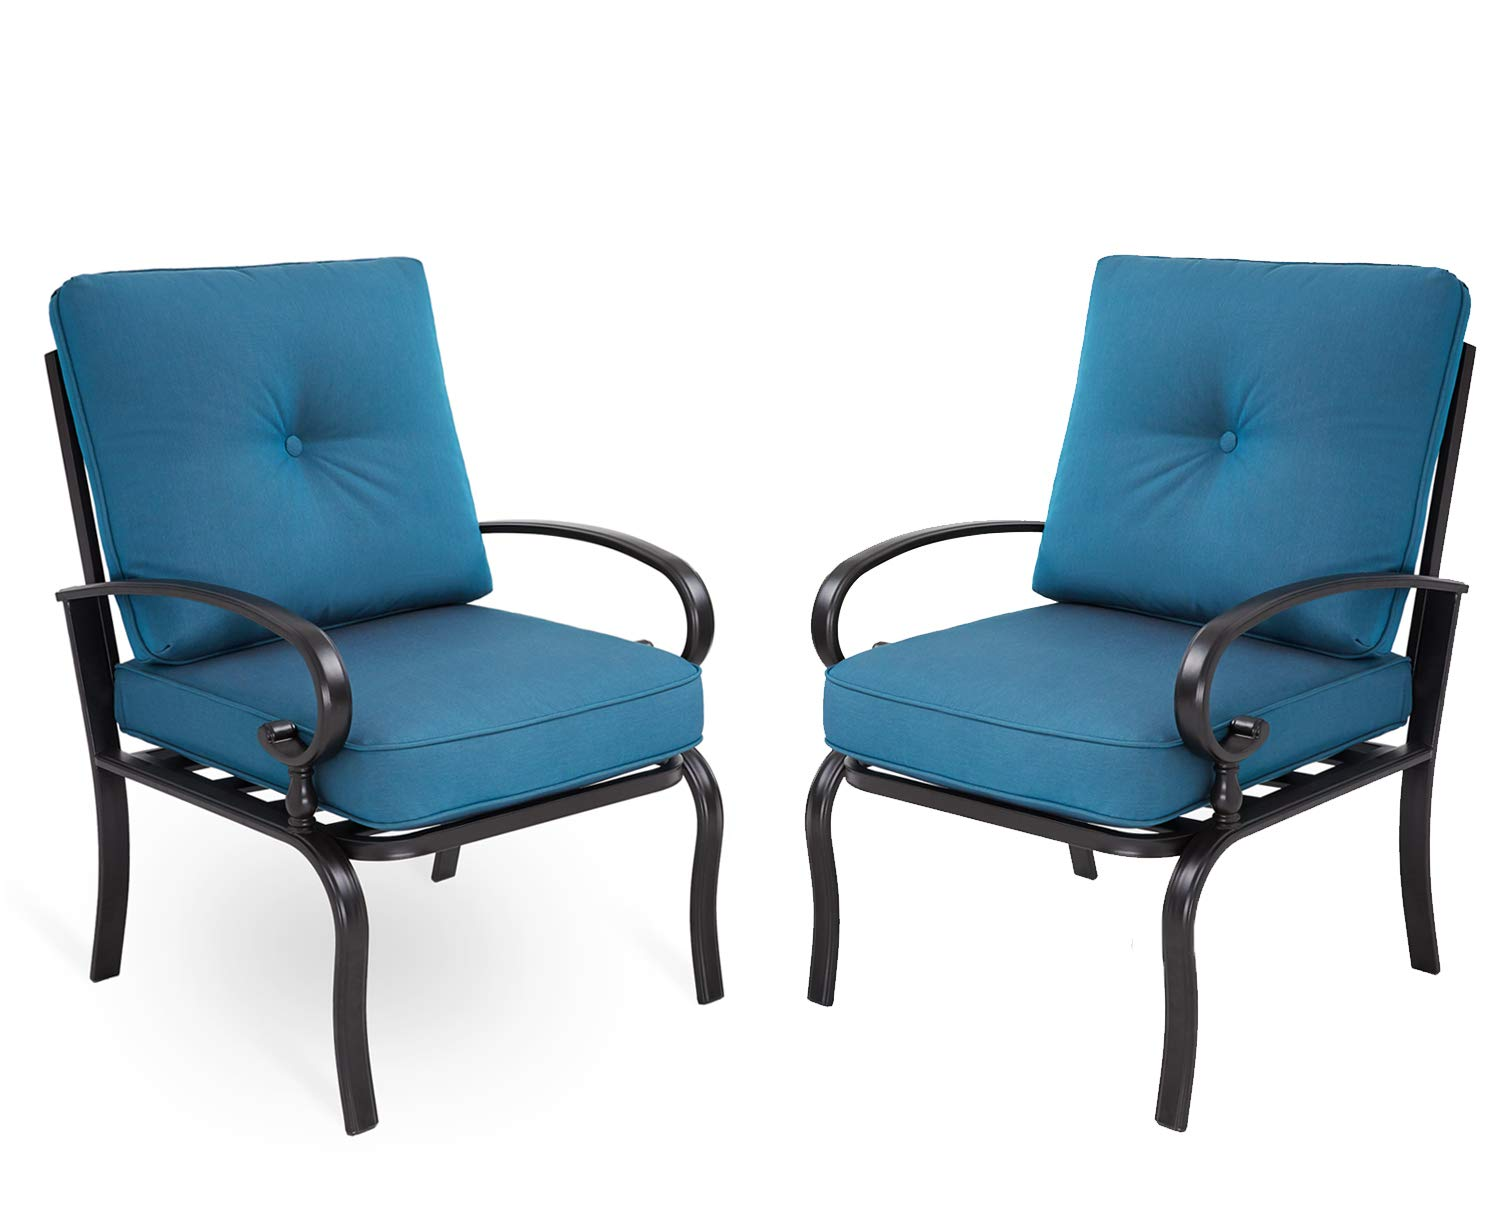 Incbruce Outdoor Furniture Bistro Set Dining Chairs Set of 2 Patio Club Chairs Outdoor Wrought Iron Furniture Set|A Pair of Garden Dining Seating Chair, All-Weather Patio Furniture, Peacock Blue